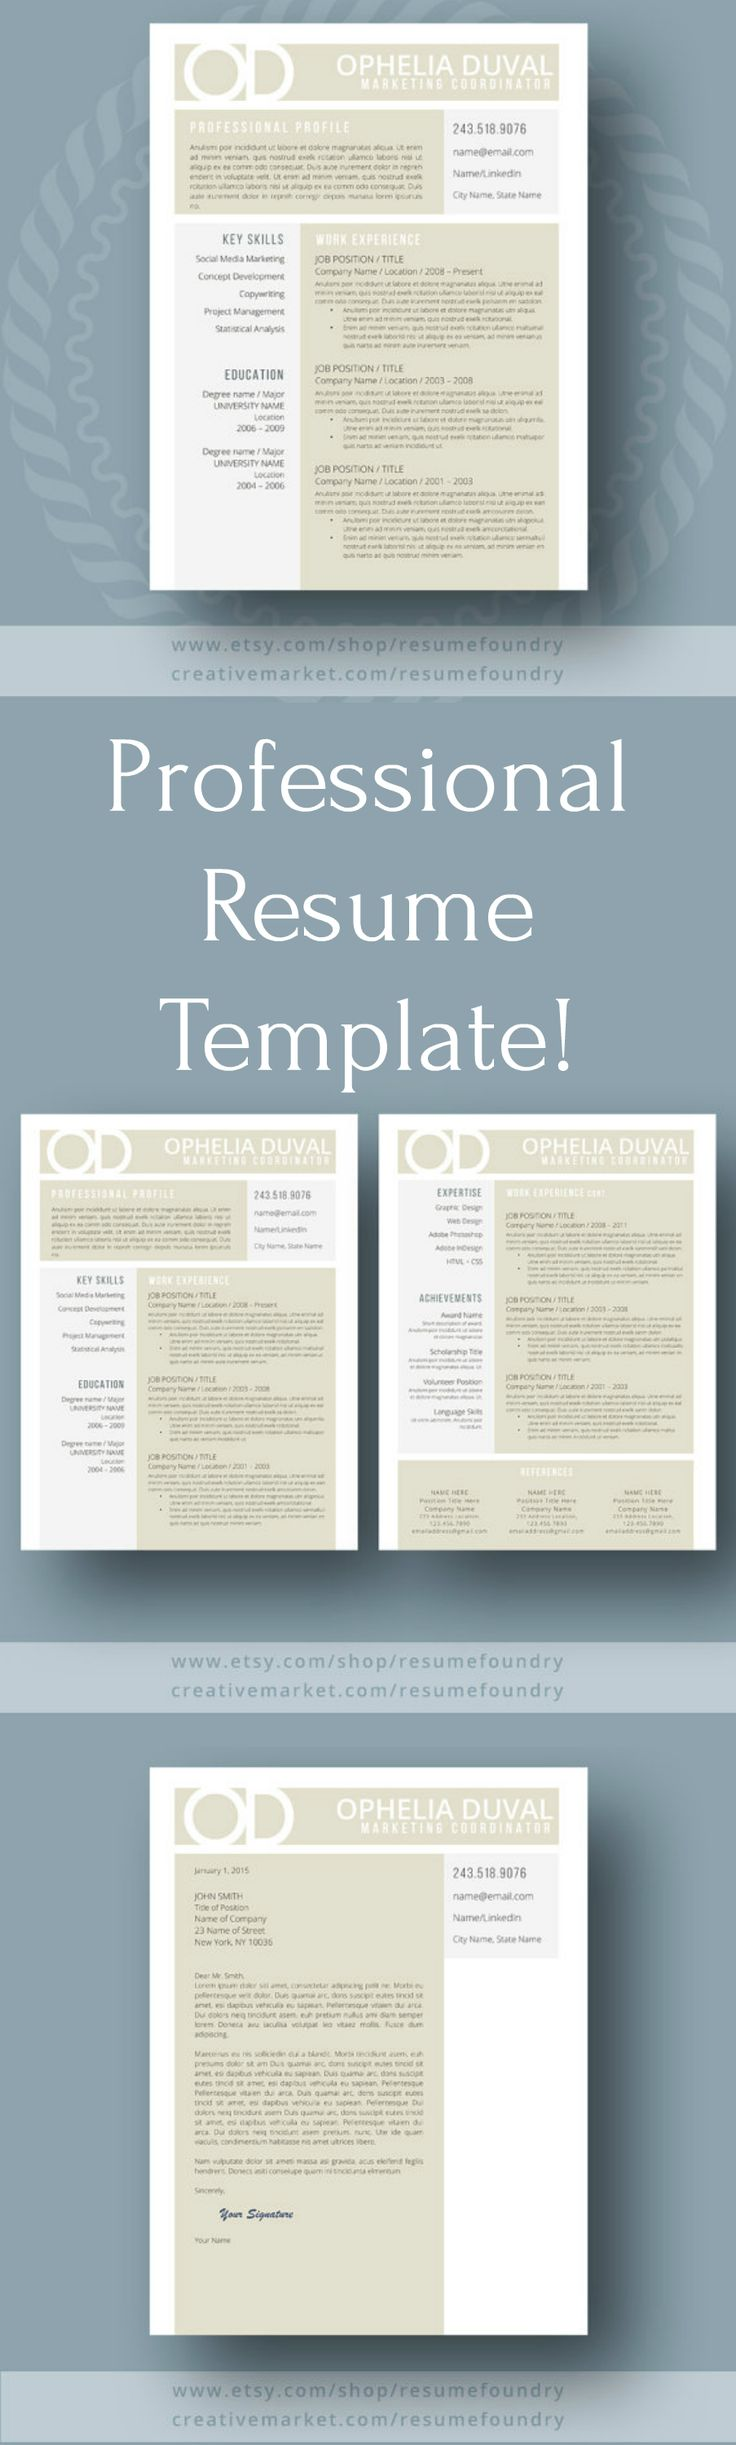 Professional and modern resume template to use! Easily customizable, you can update the colors, fonts, headings and layout to create a piece that's uniquely your own. No advanced design skills are necessary. #resume #template #cv #coverletter #references #word #ad #jobhunting #career